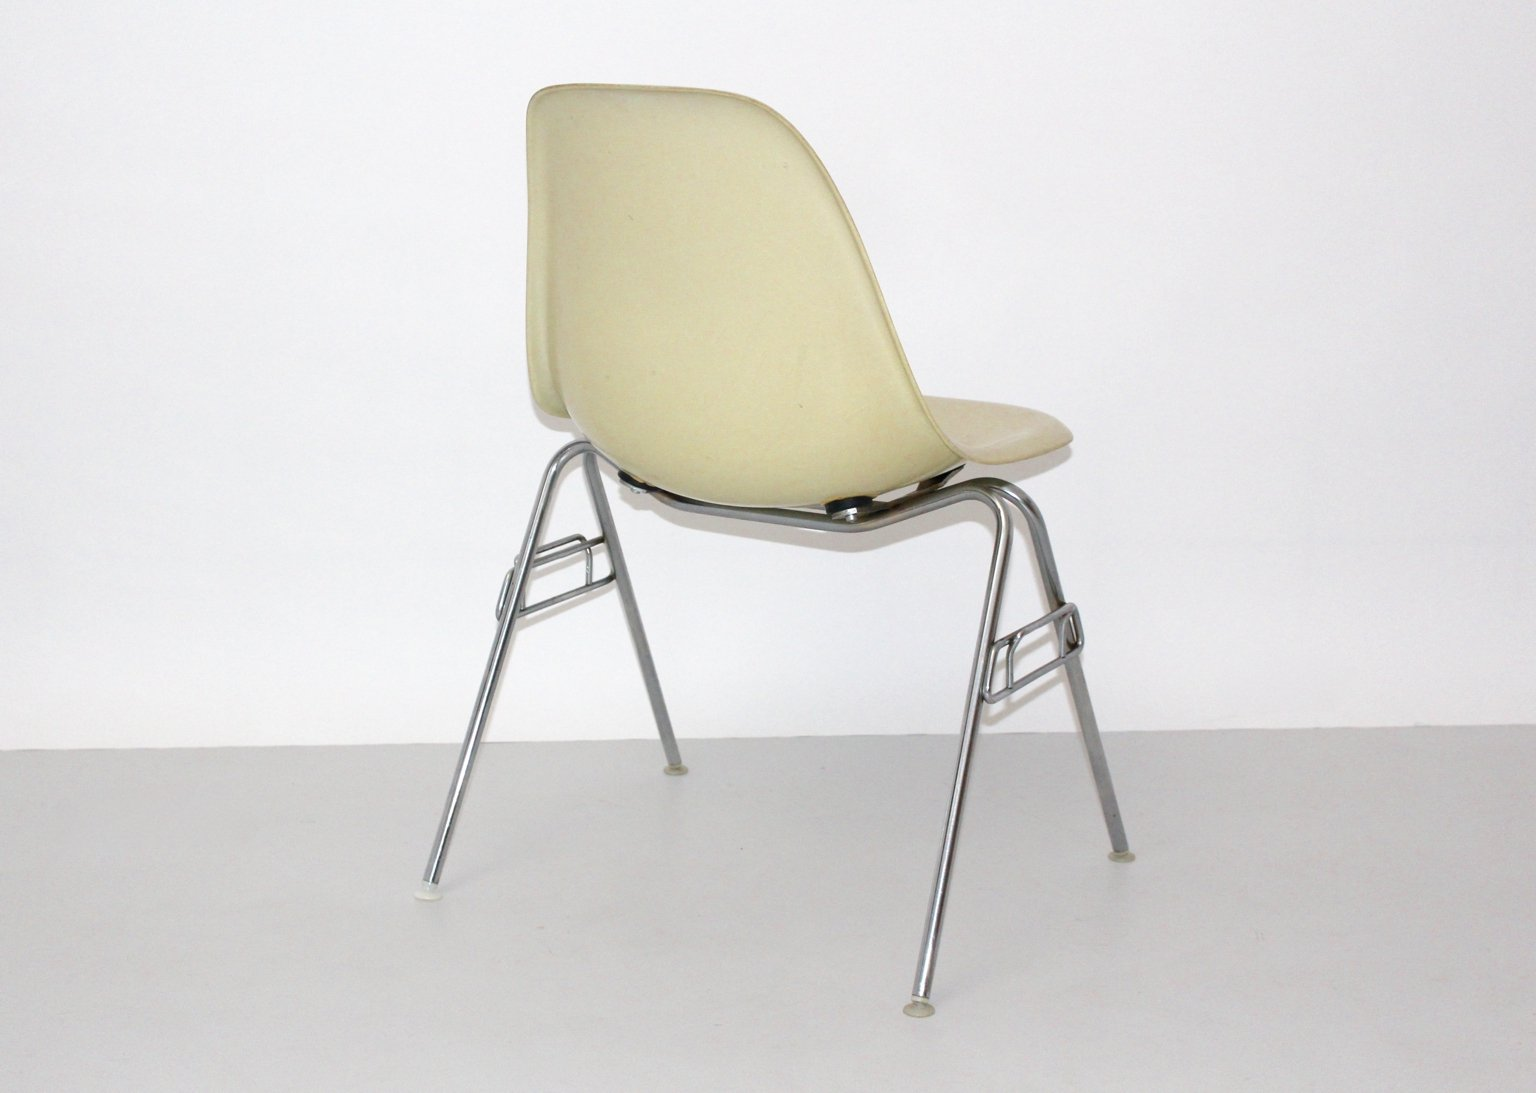 ray and charles eames furniture. Price Per Piece Ray And Charles Eames Furniture E